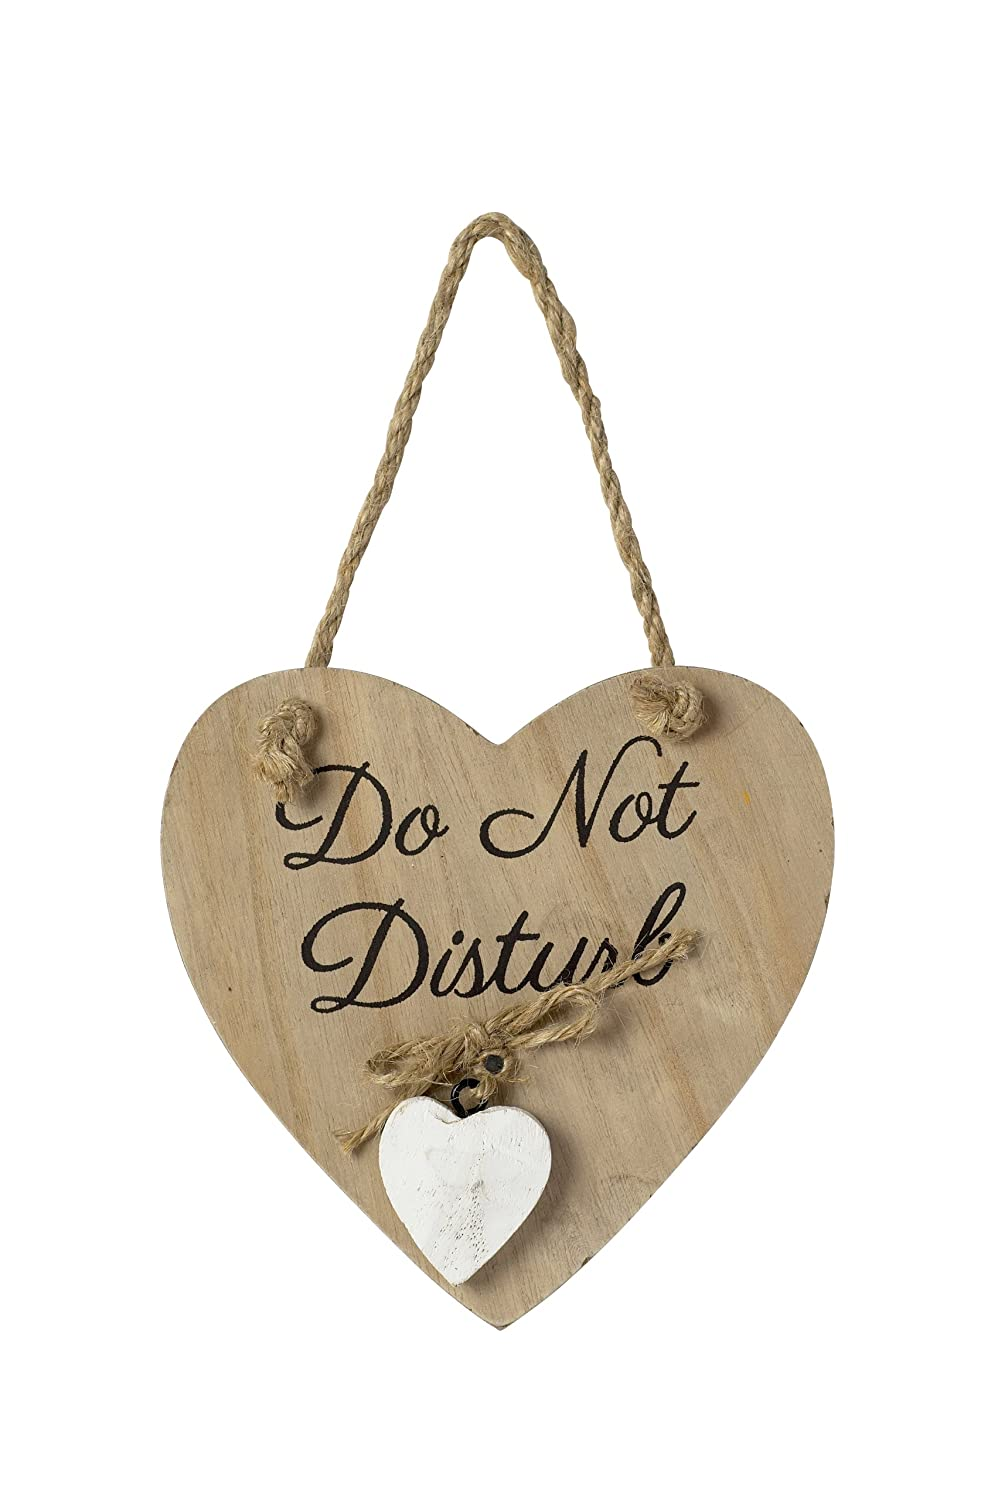 Do Not Disturb - Wooden Heart Shape Shabby Chic Sign Used2bee